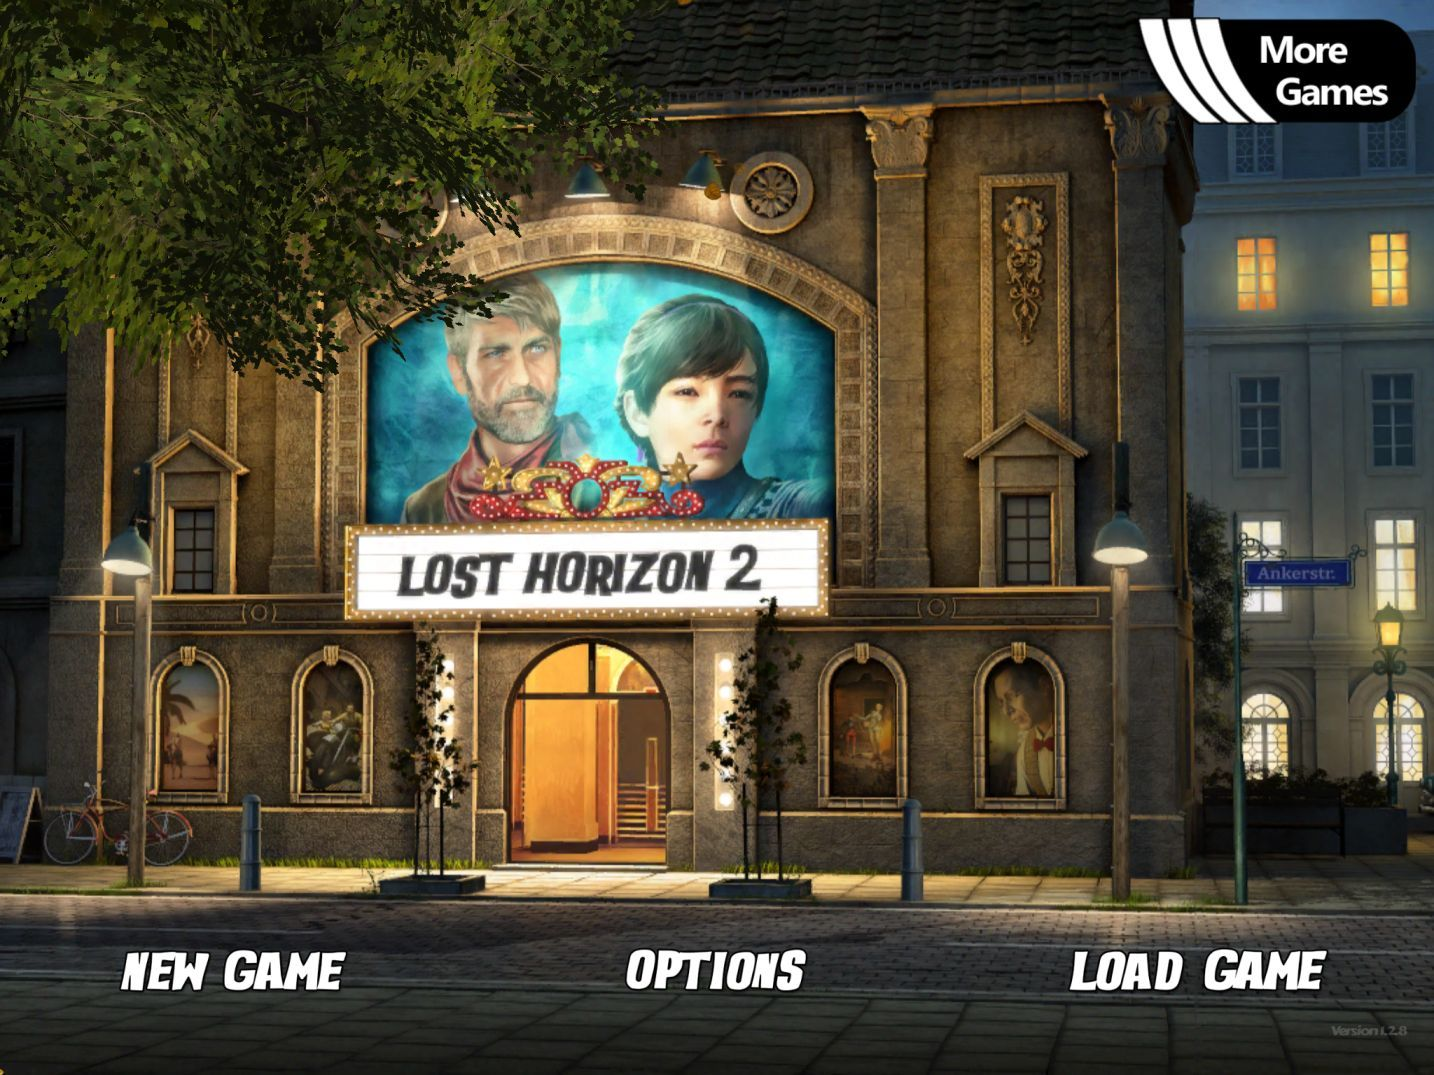 Lost Horizon 2 (copie d'écran 1 sur iPhone / iPad)